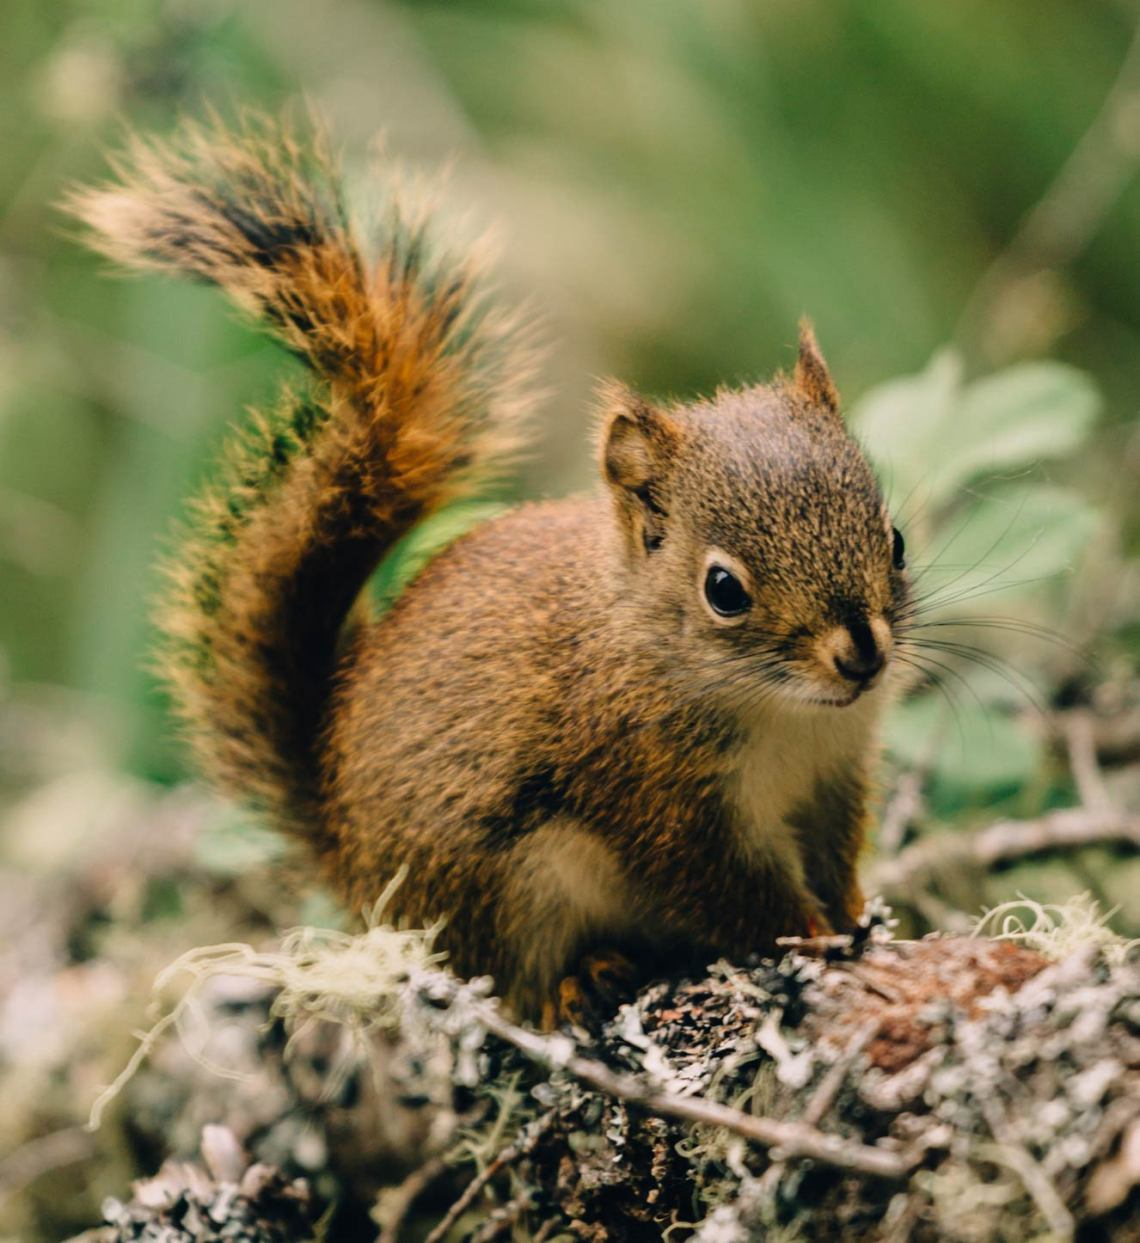 squirrel_isle_royale_national_park3_tips